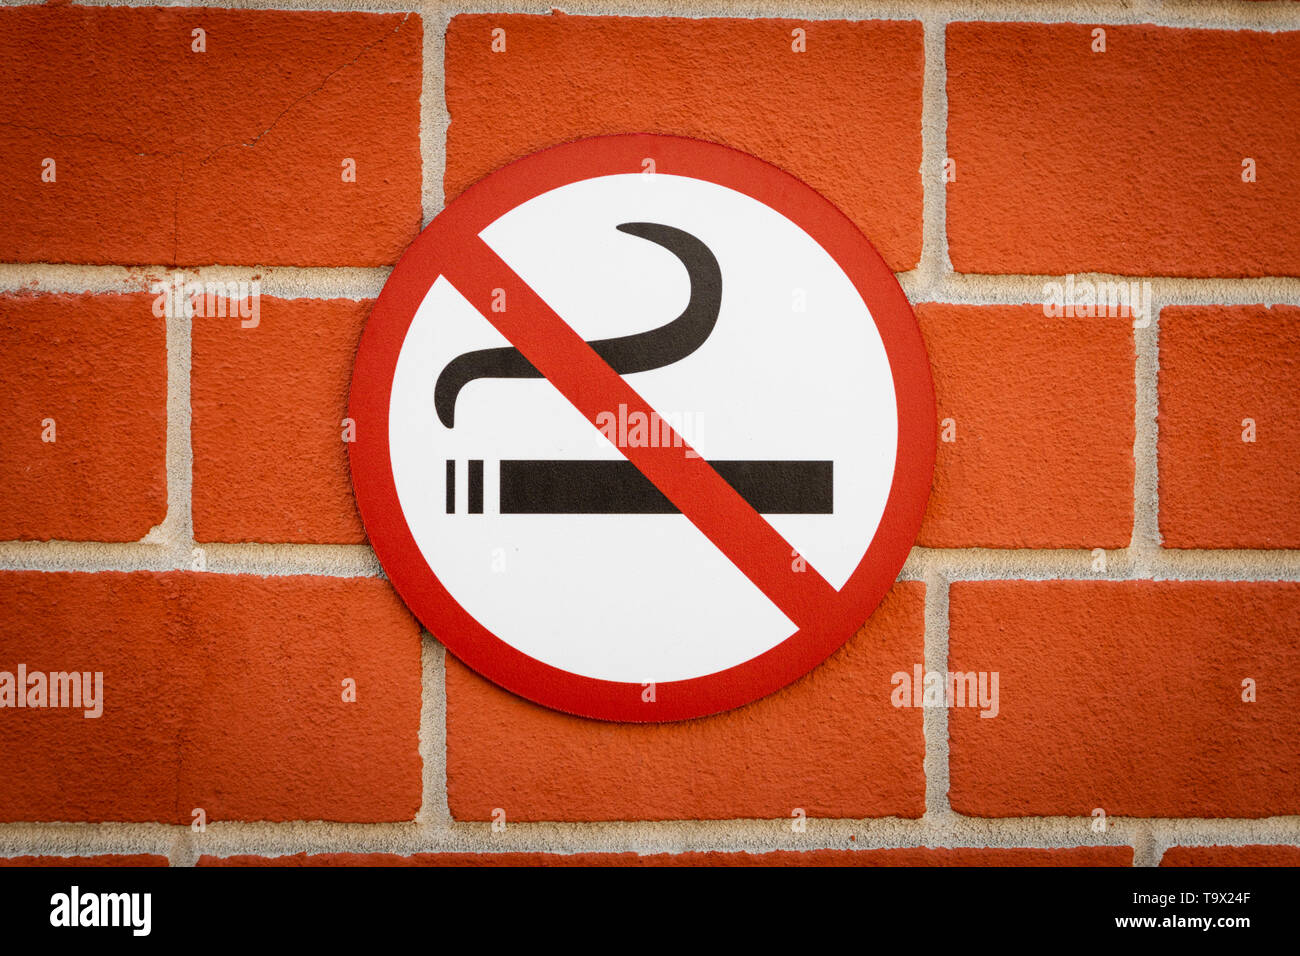 no smoking sign against brickwall in European city - Stock Image